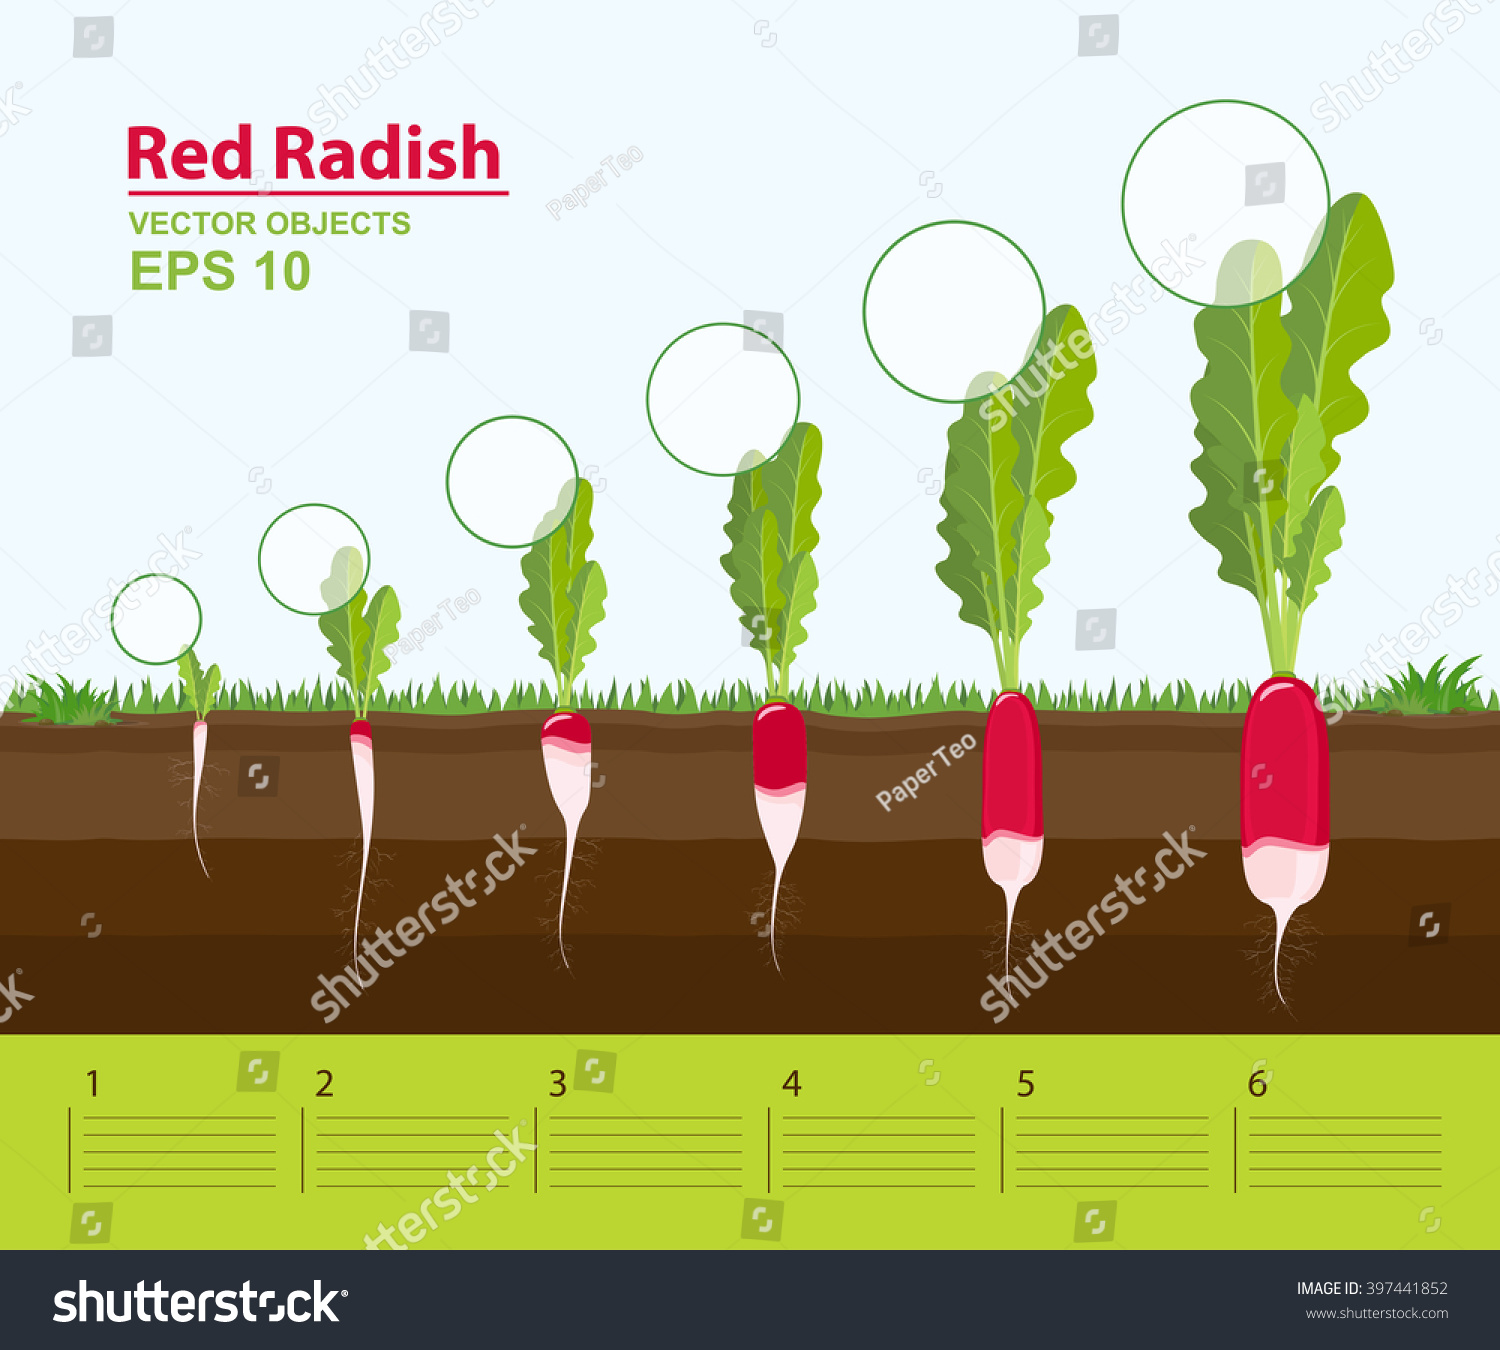 Stock Vector Vector Illustration Phases And Stage Of Growth Development And Productivity Of A Red Radish In on Plant Growing Cycle